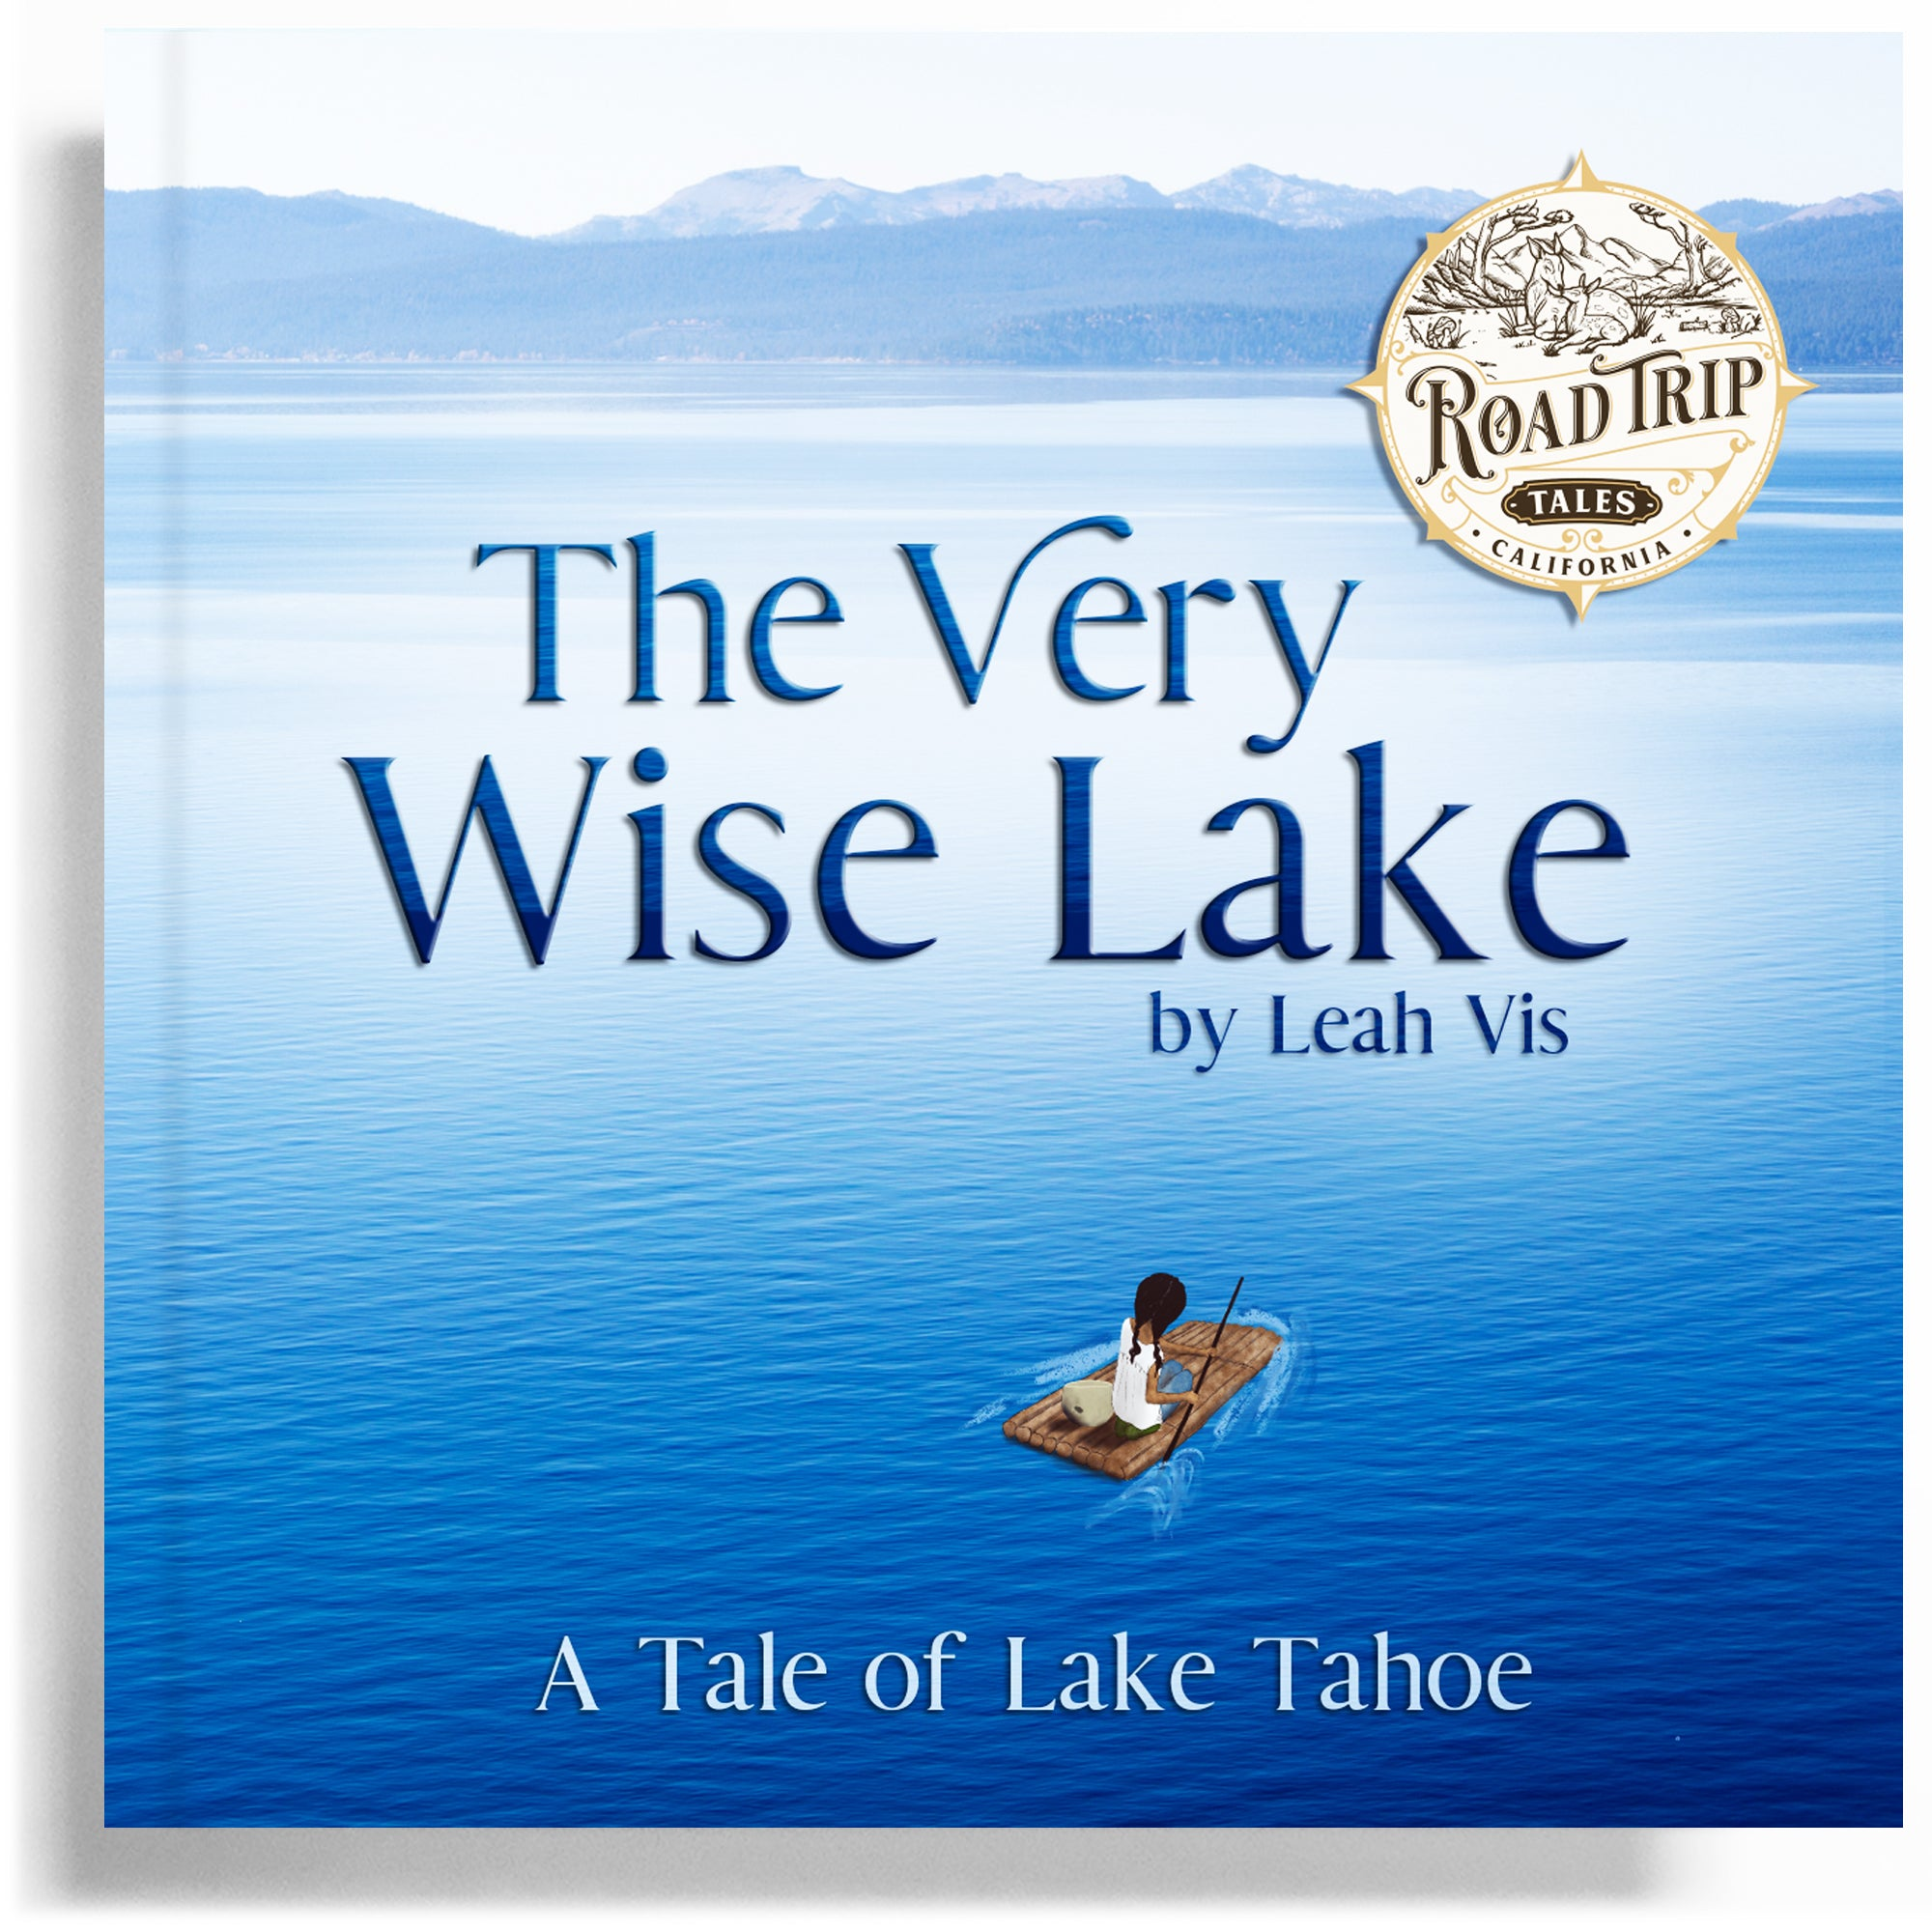 The Very Wise Lake - 8.5 x 8.5 paperback